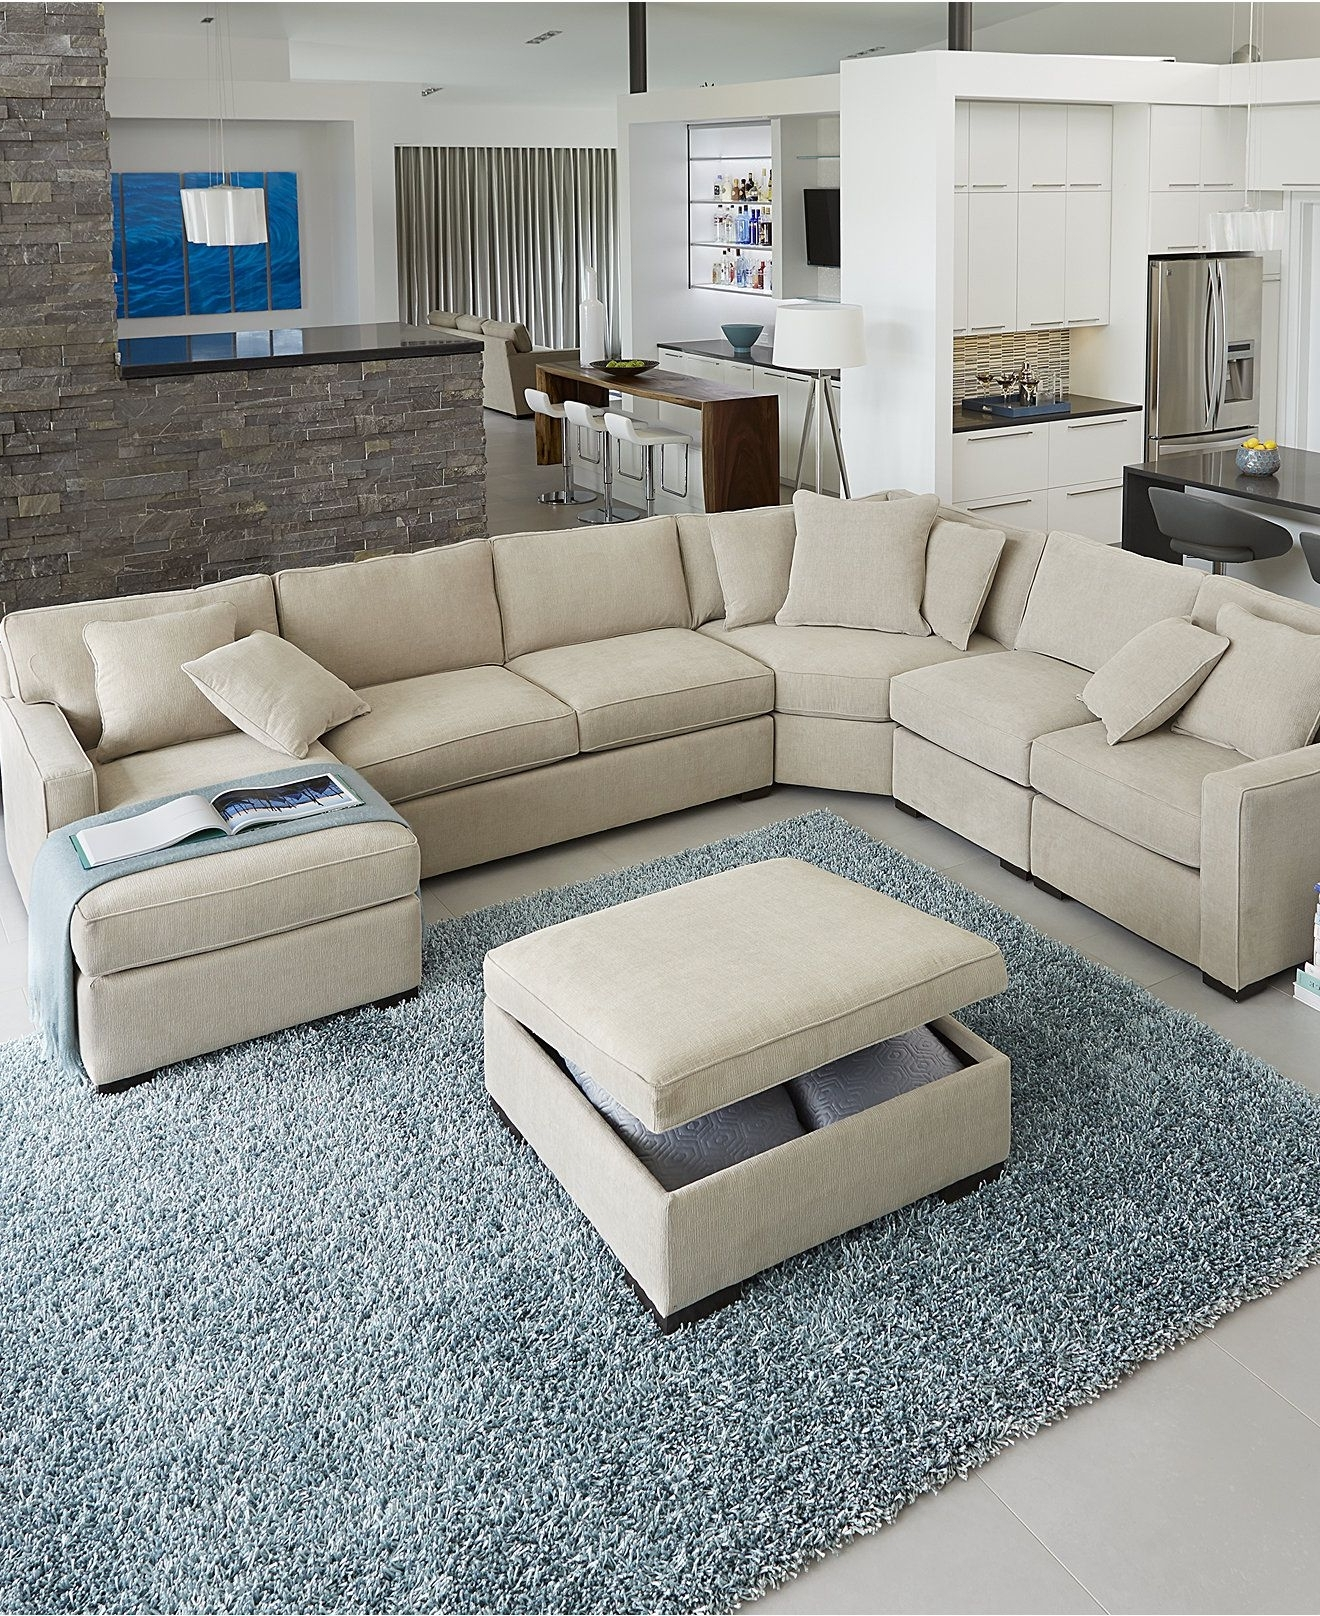 Newest Radley Fabric Sectional Sofa Collection, Created For Macy's Throughout Macys Sectional Sofas (View 4 of 15)